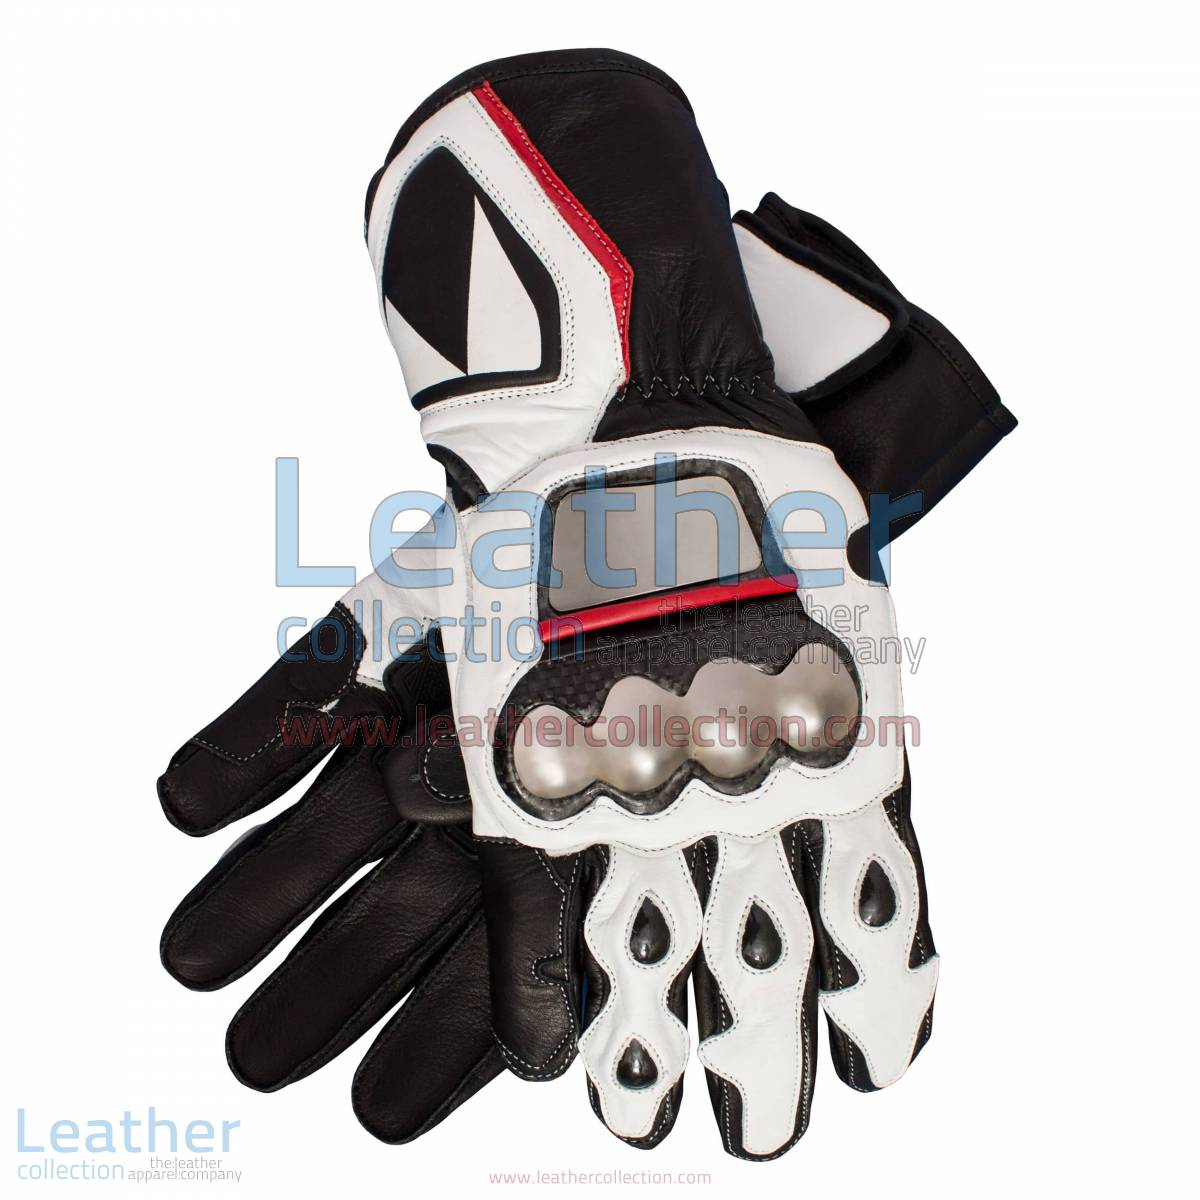 Max Biaggi Motorcycle Race Gloves | race gloves,motorcycle race gloves